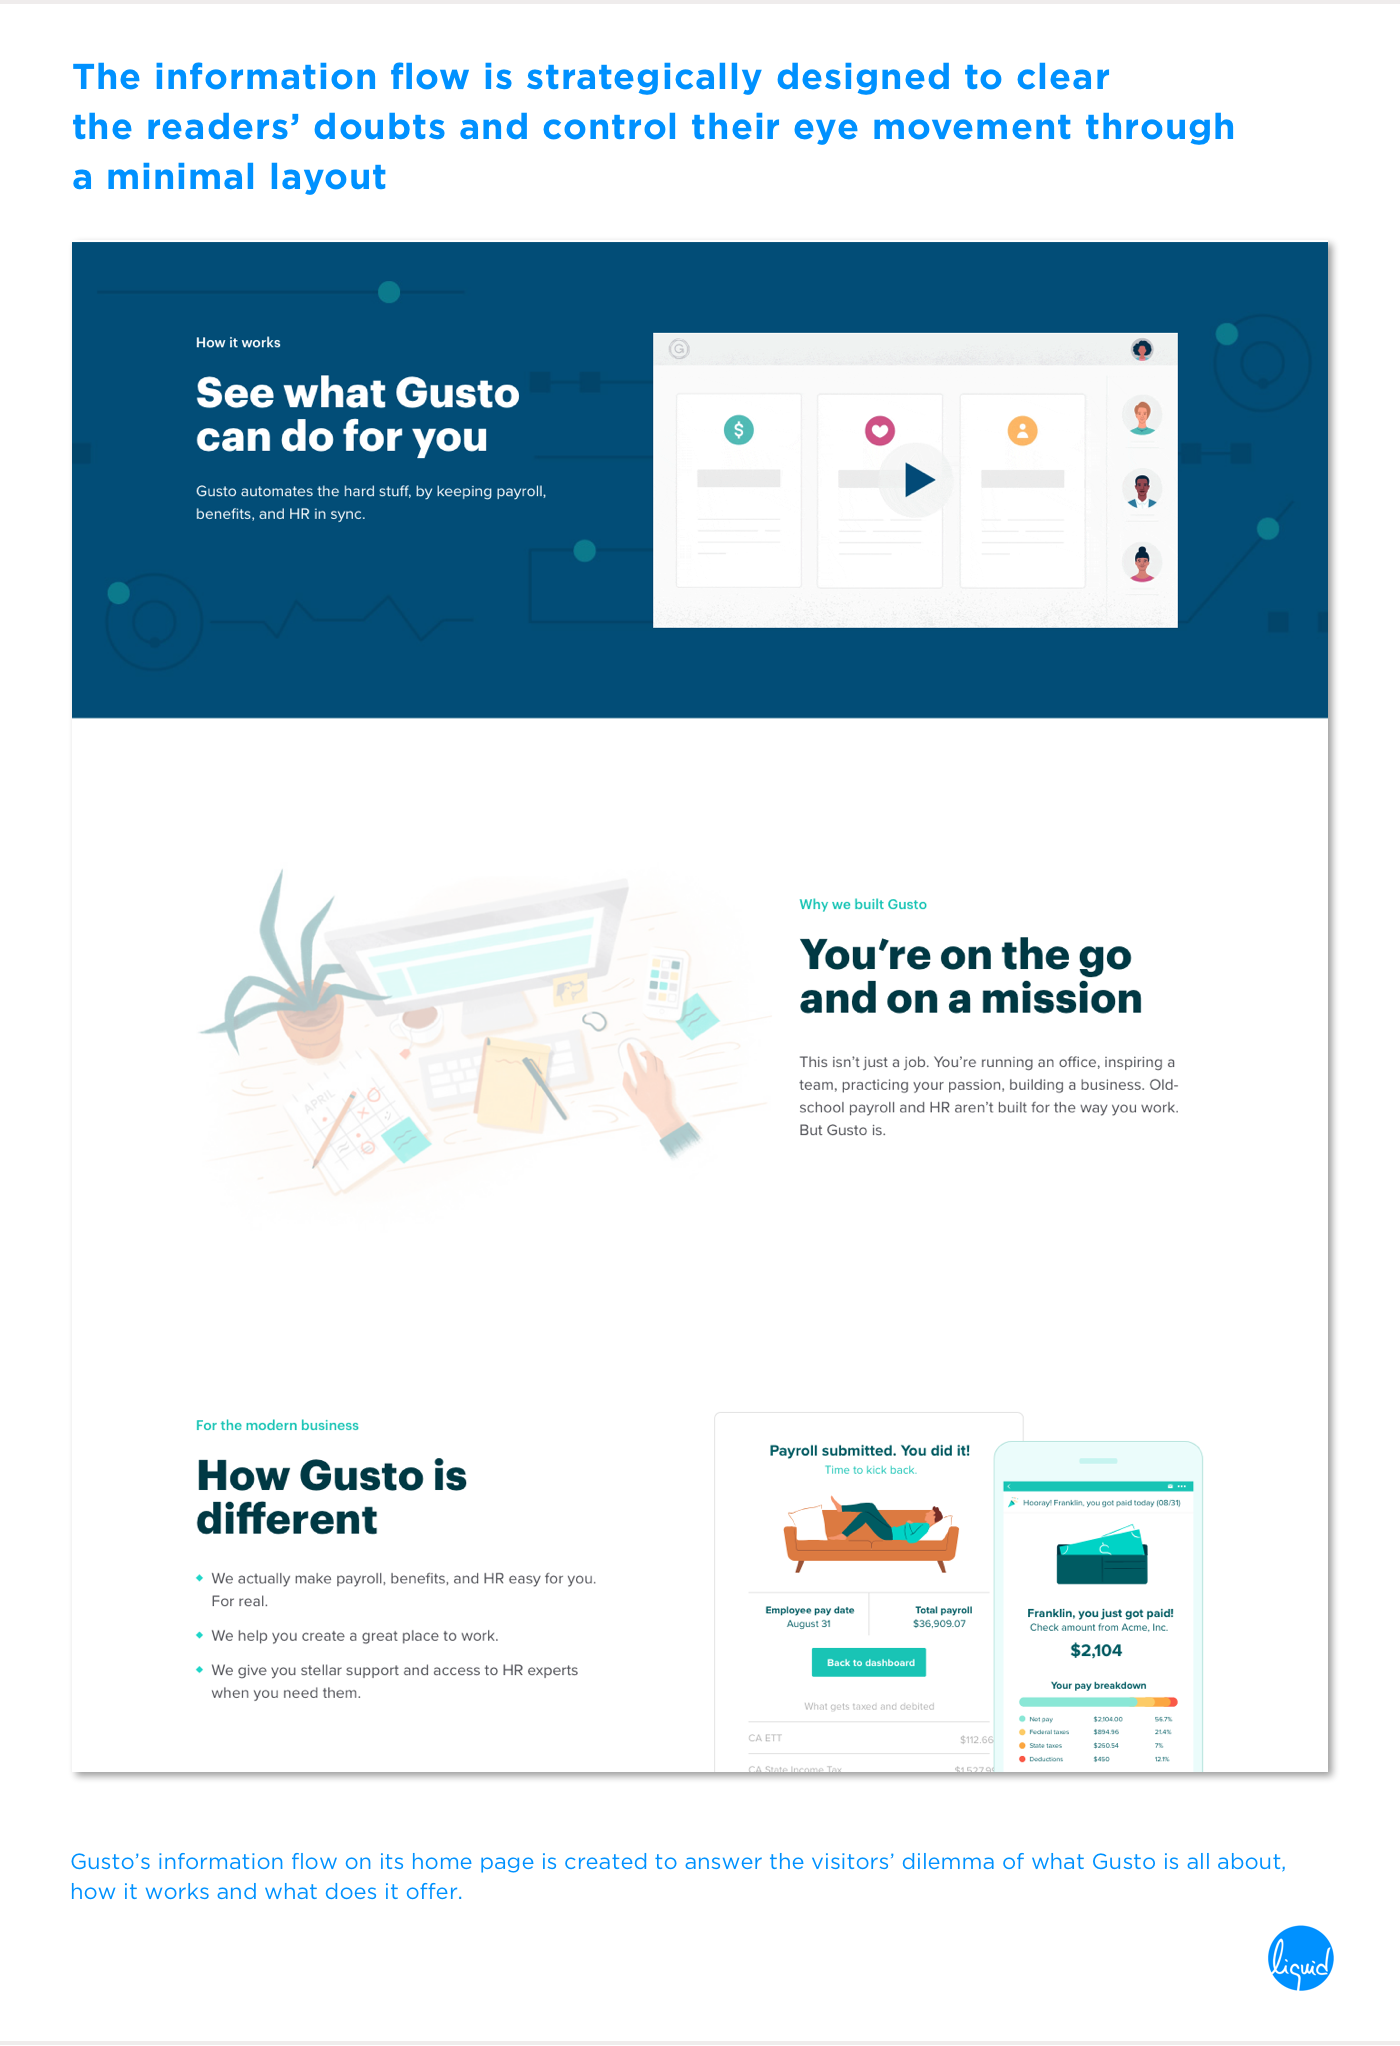 Conversions on home page Gusto Eye Movement